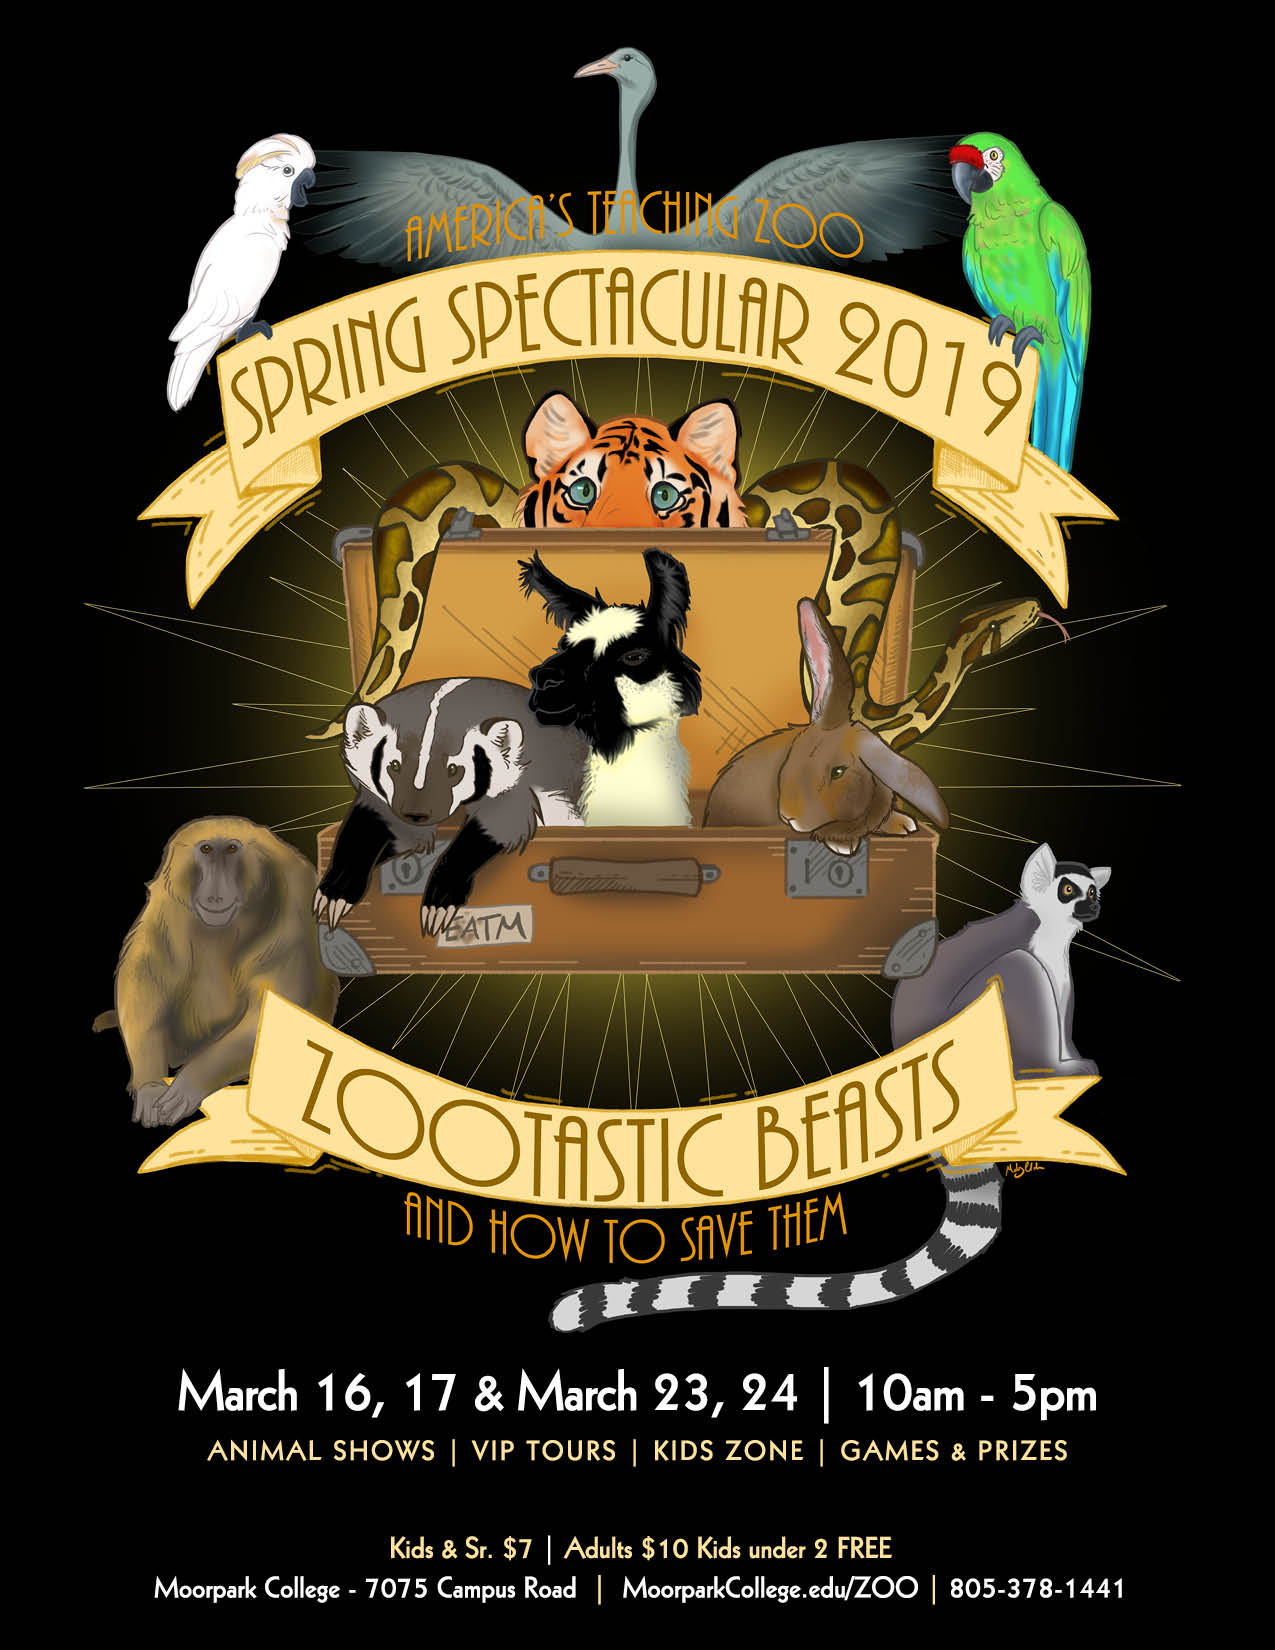 March 23 — AMERICA'S TEACHING ZOO AT MOORPARK COLLEGE to Host its Annual Spring Spectacular